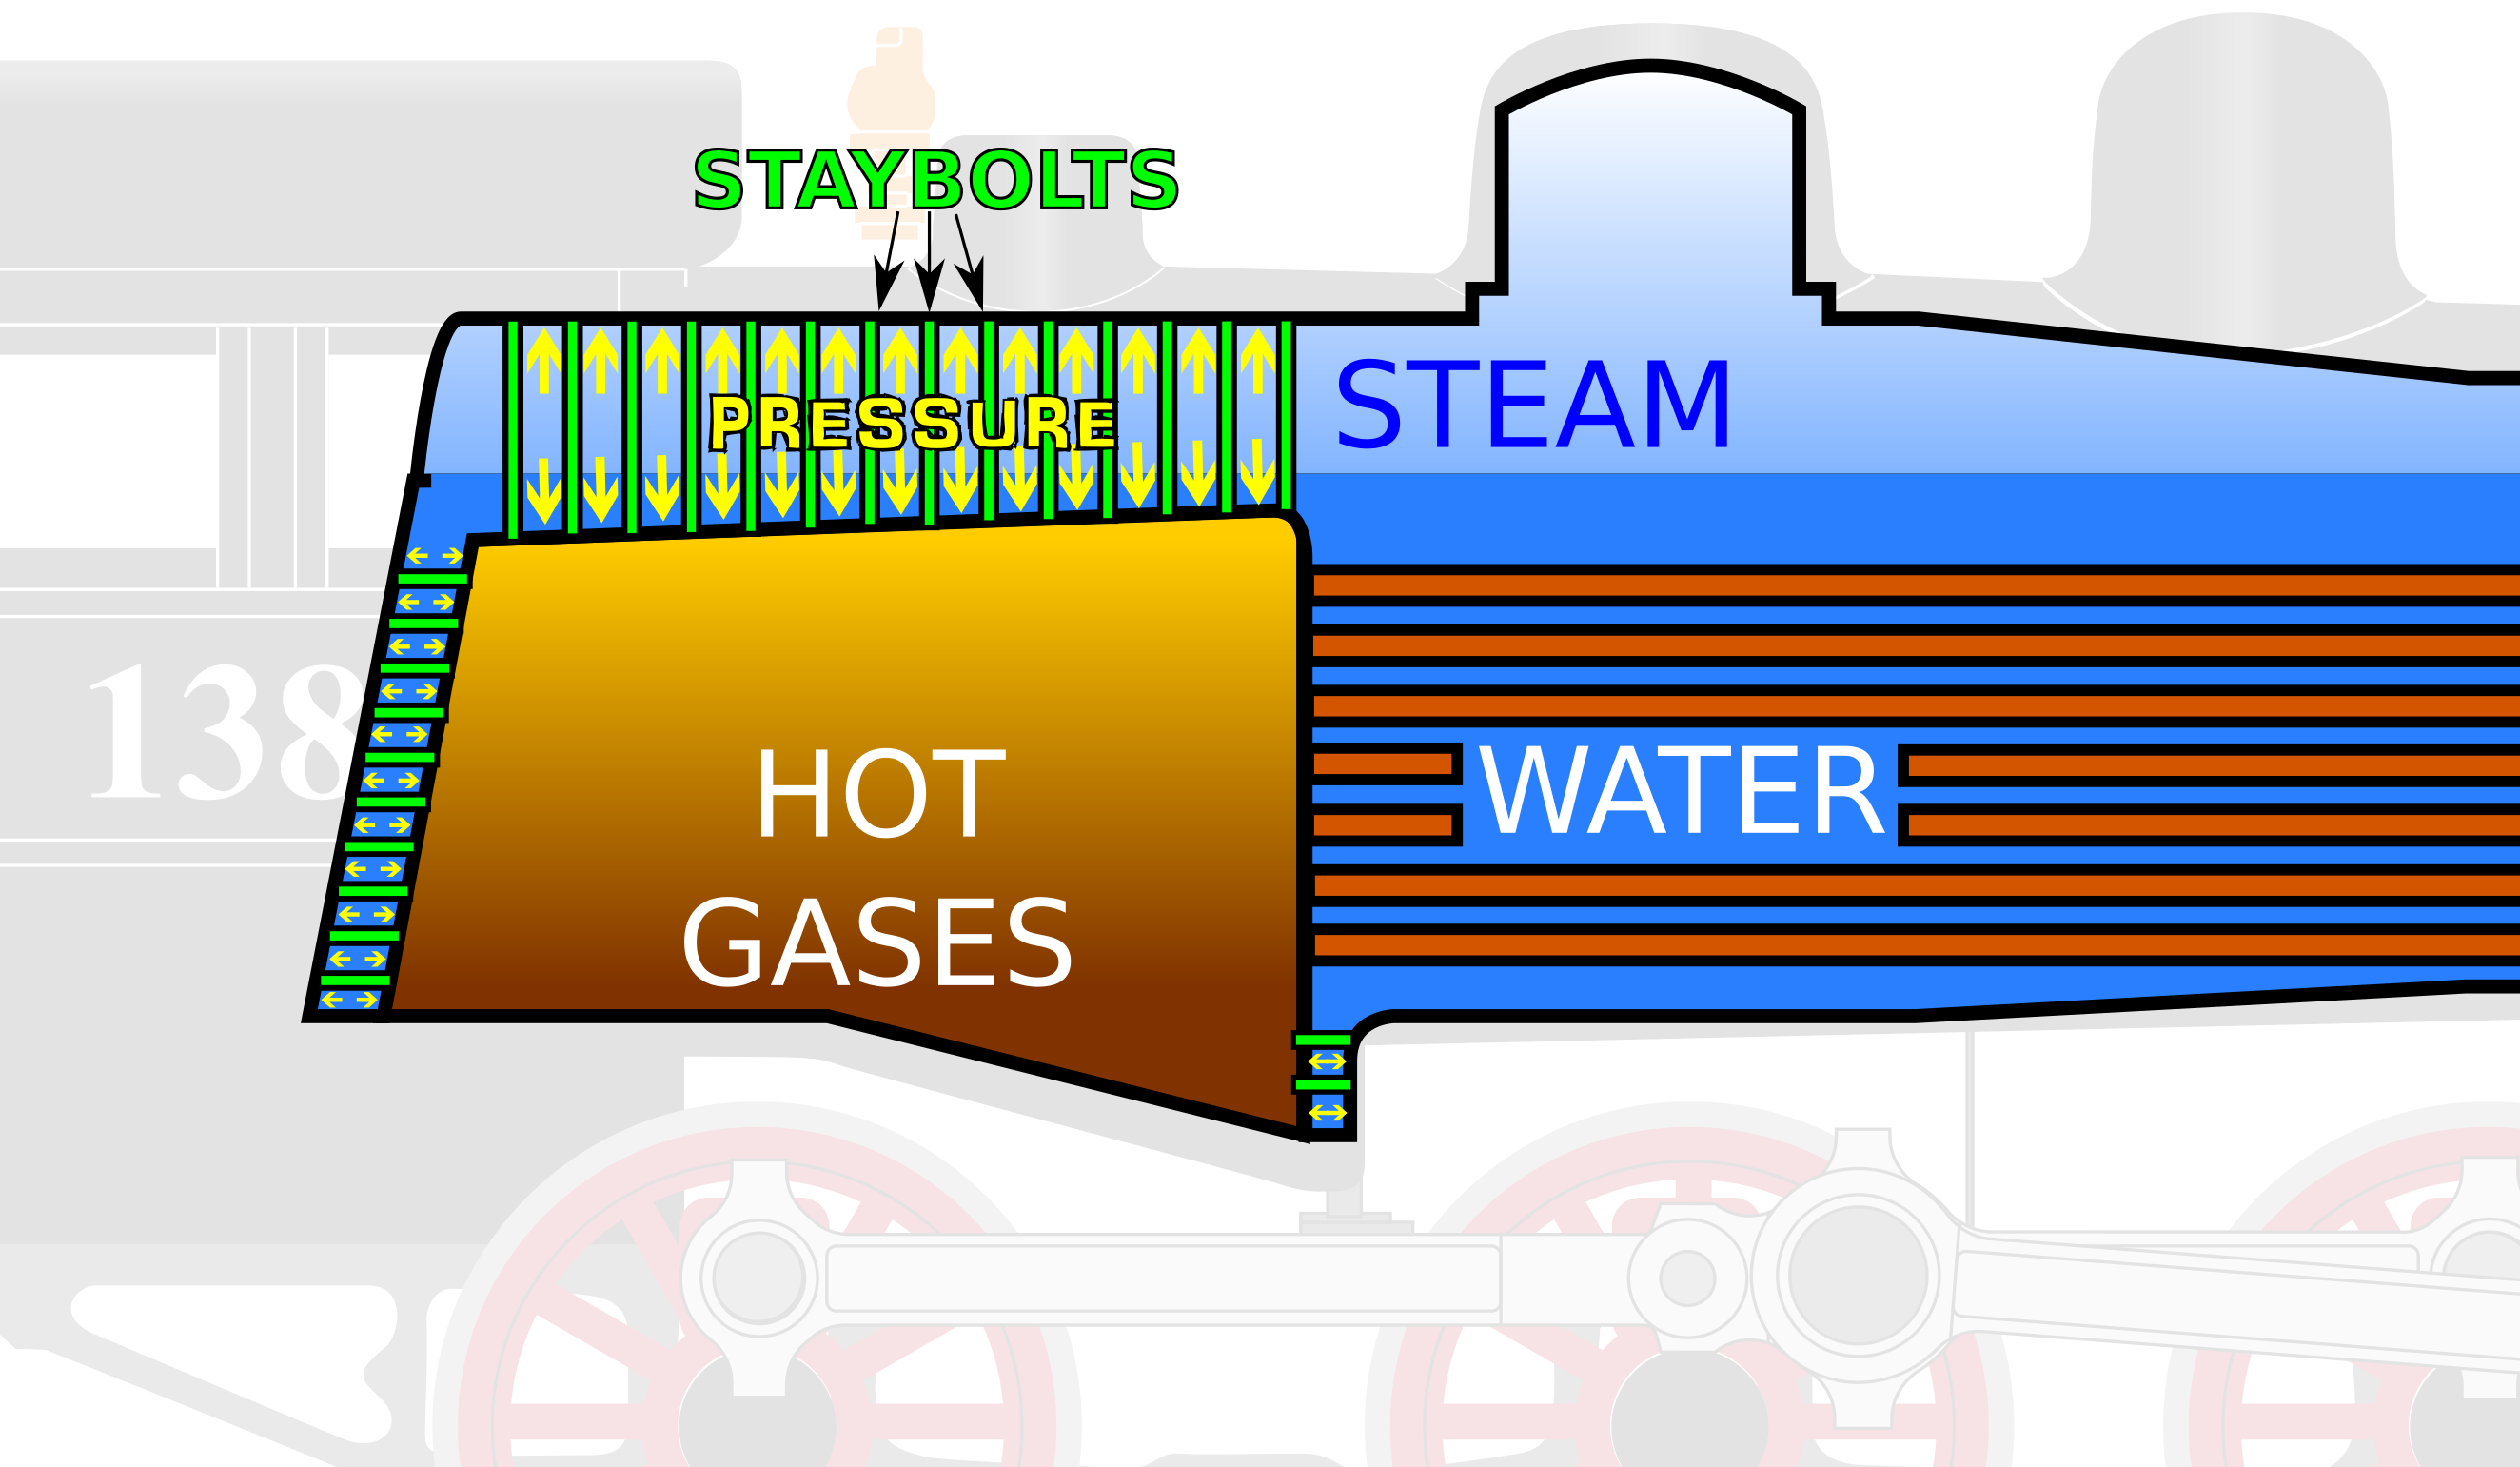 diagram of boiler showing staybolts